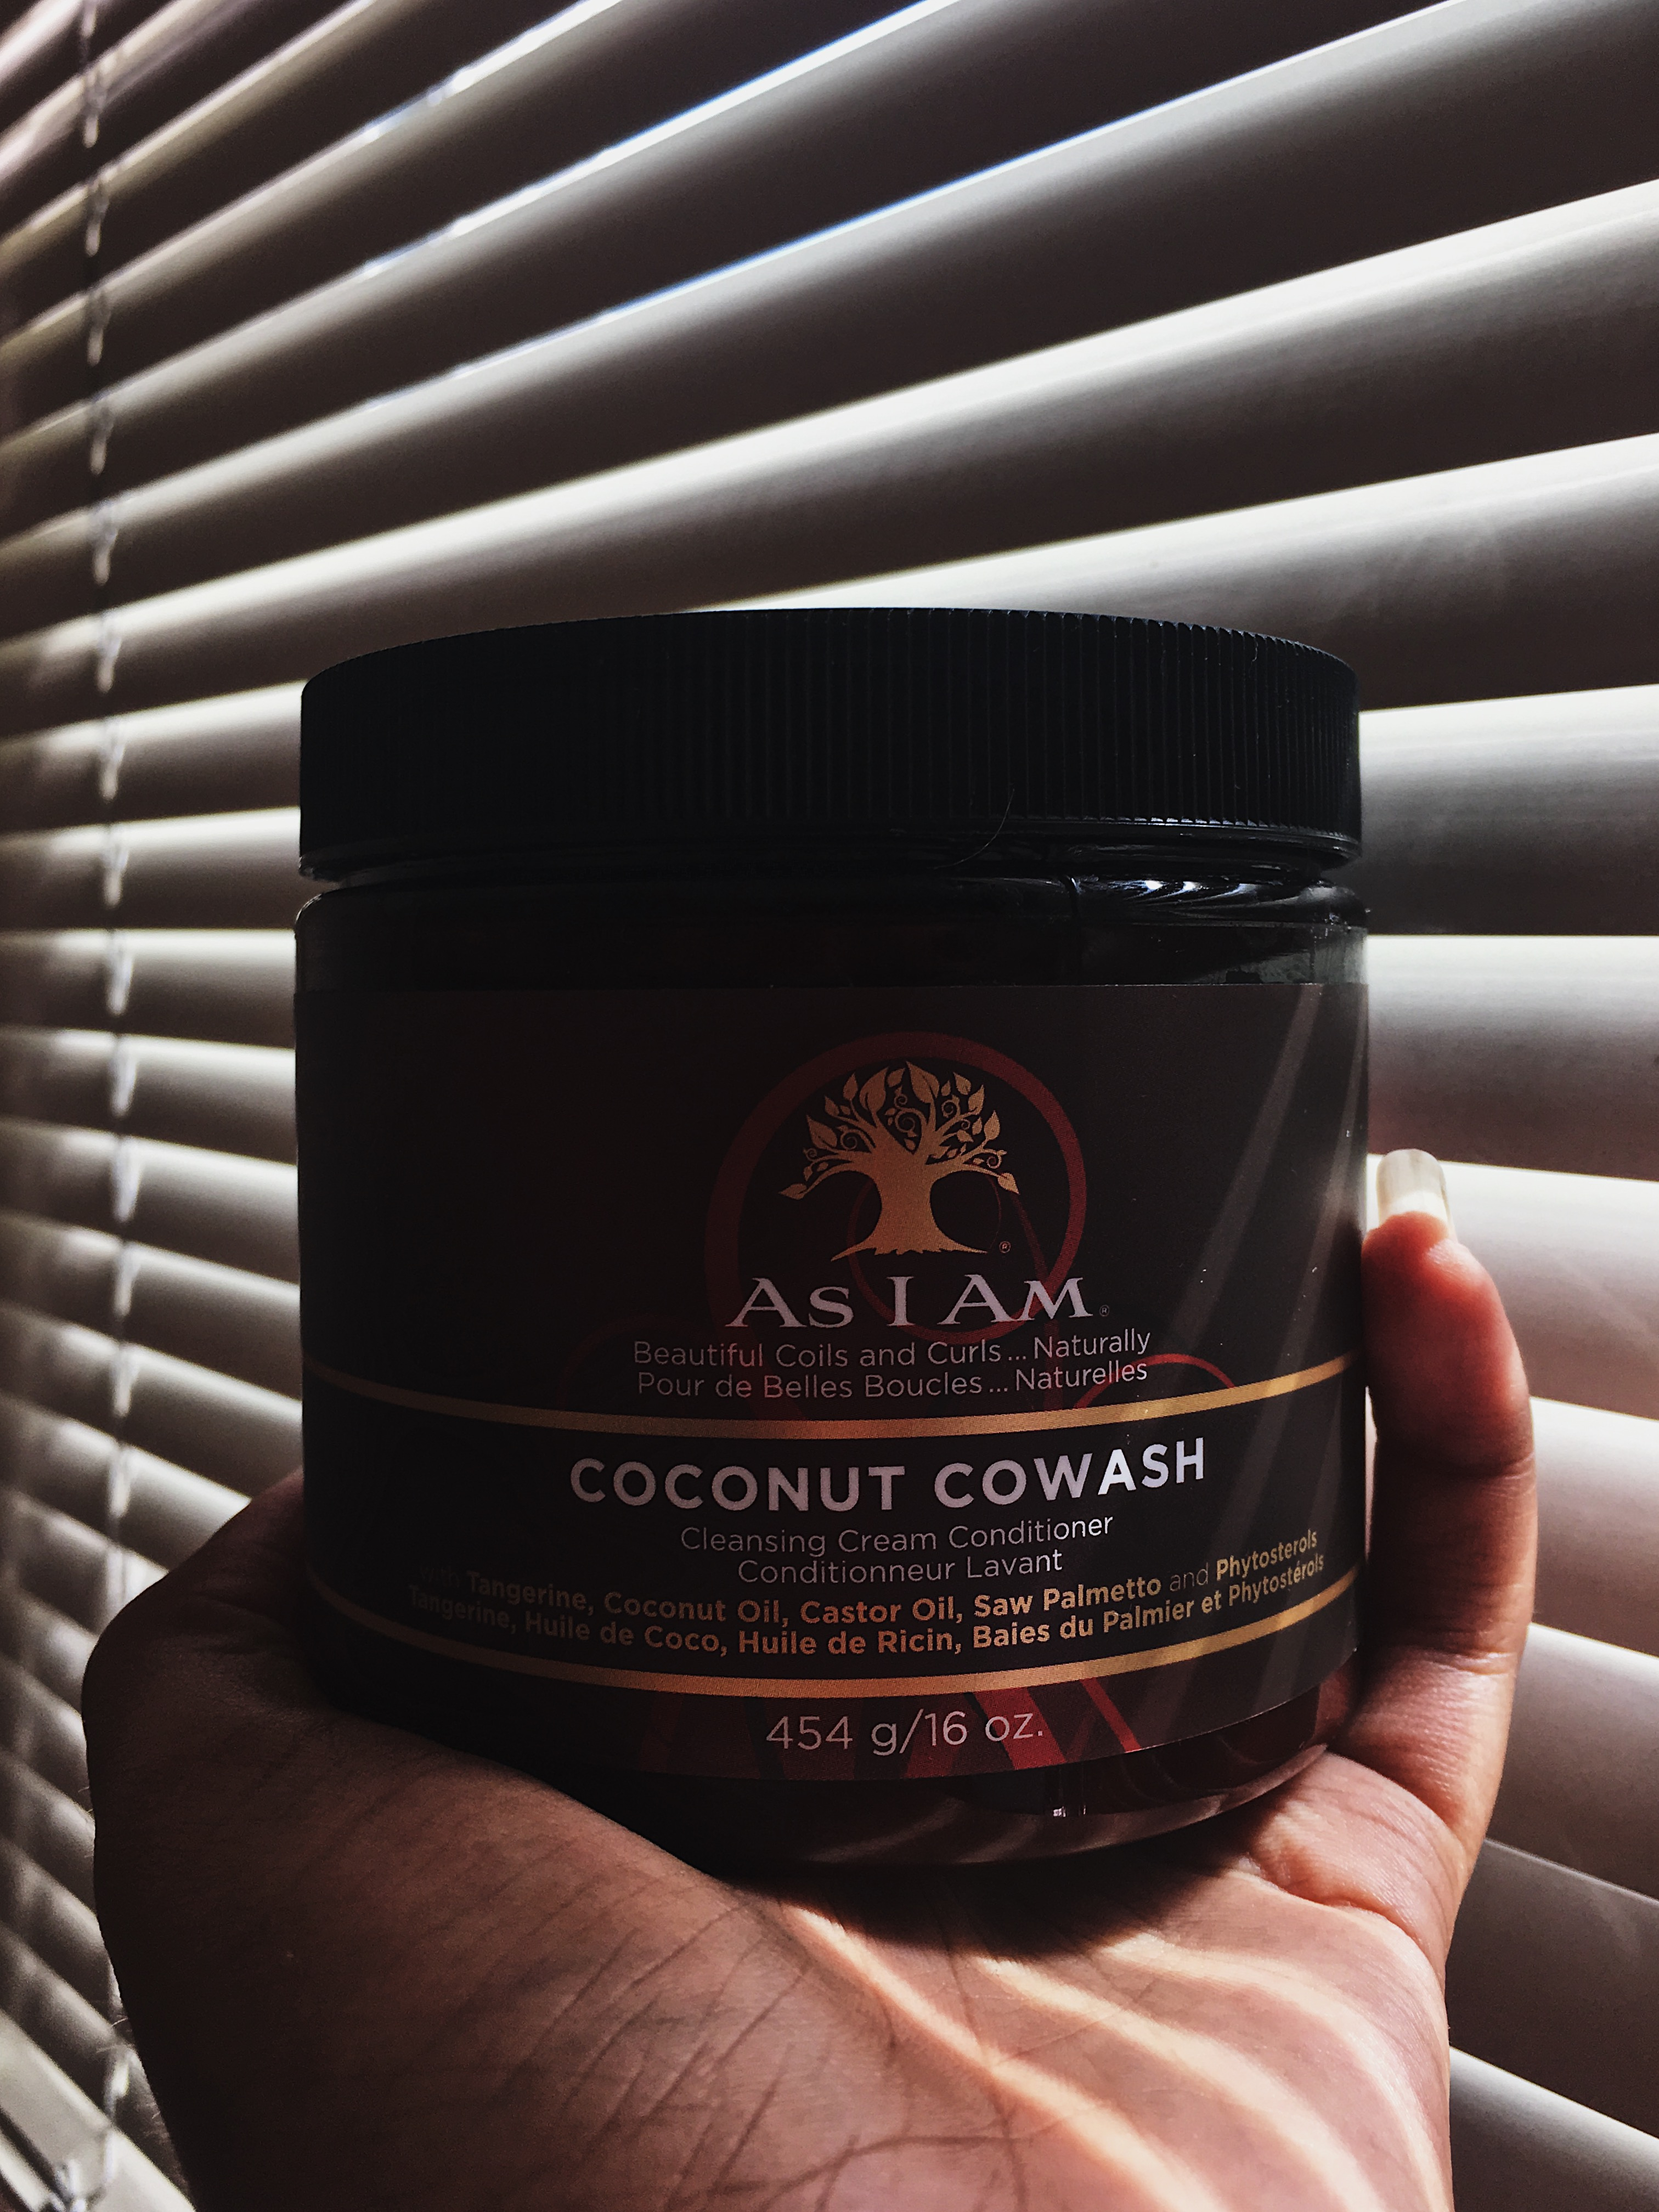 as i am coconut cowash for natural hair